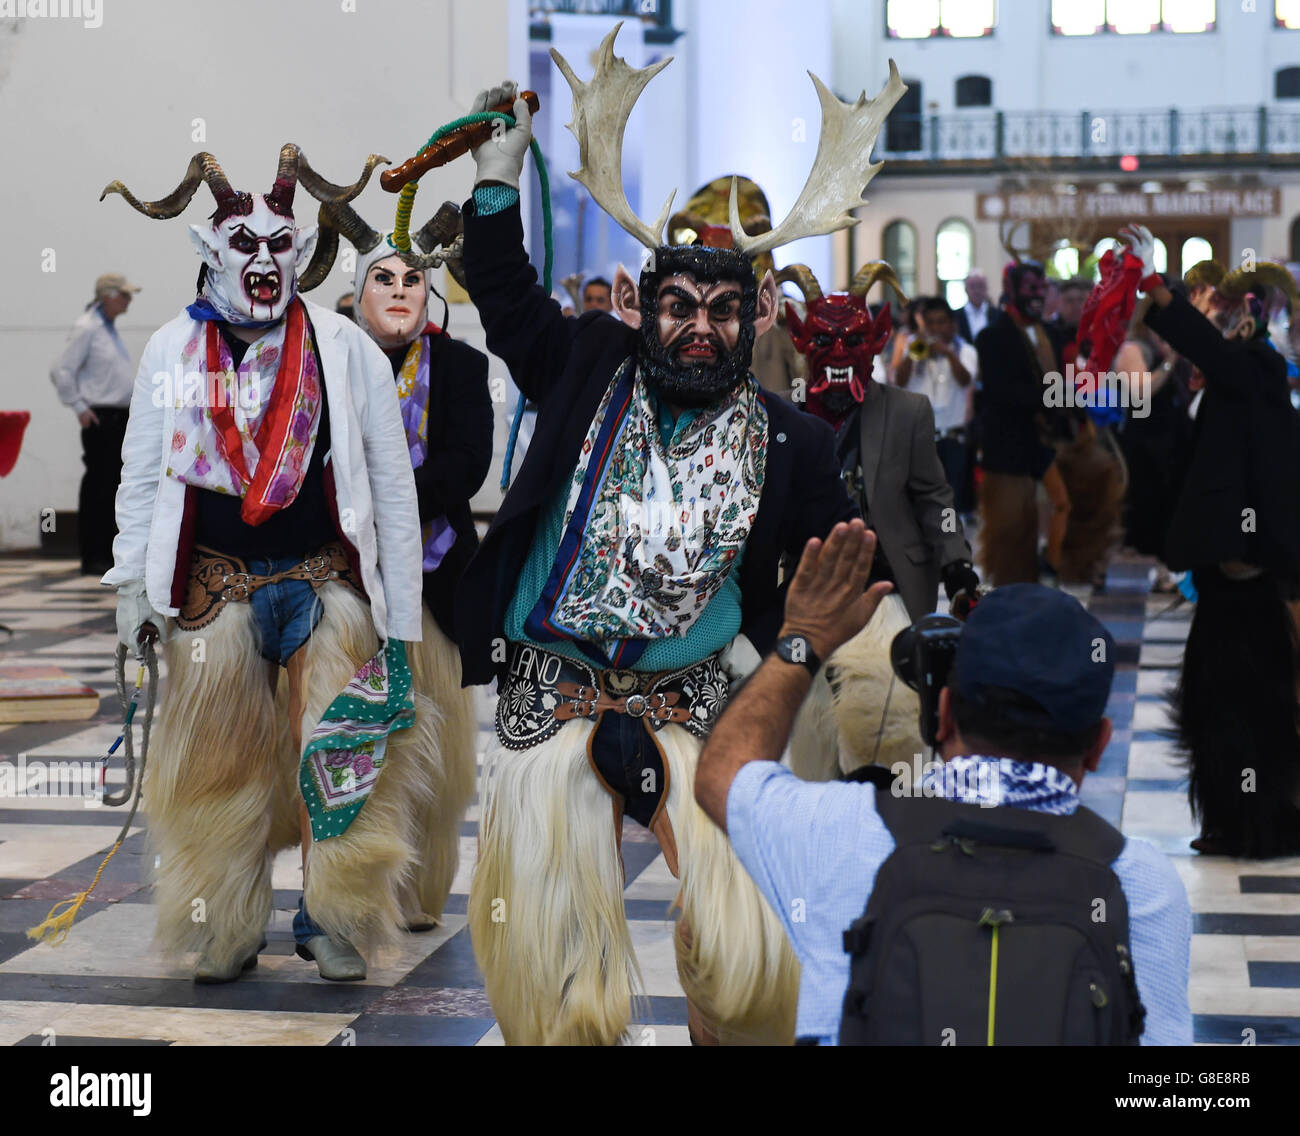 (160629) -- WASHINGTON D.C., June 29, 2016 (Xinhua) -- Performers wearing costumes are seen during the opening ceremony - Stock Image